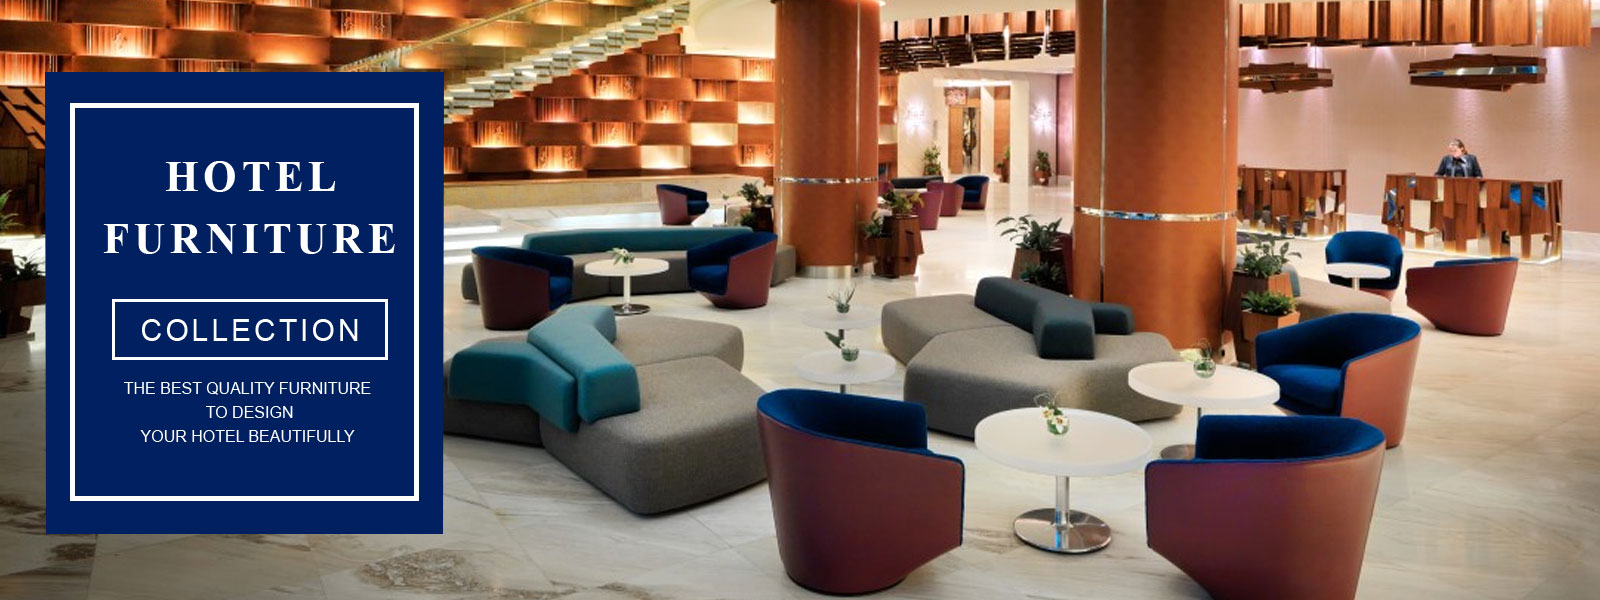 Hotel Furniture Manufacturers in Delhi